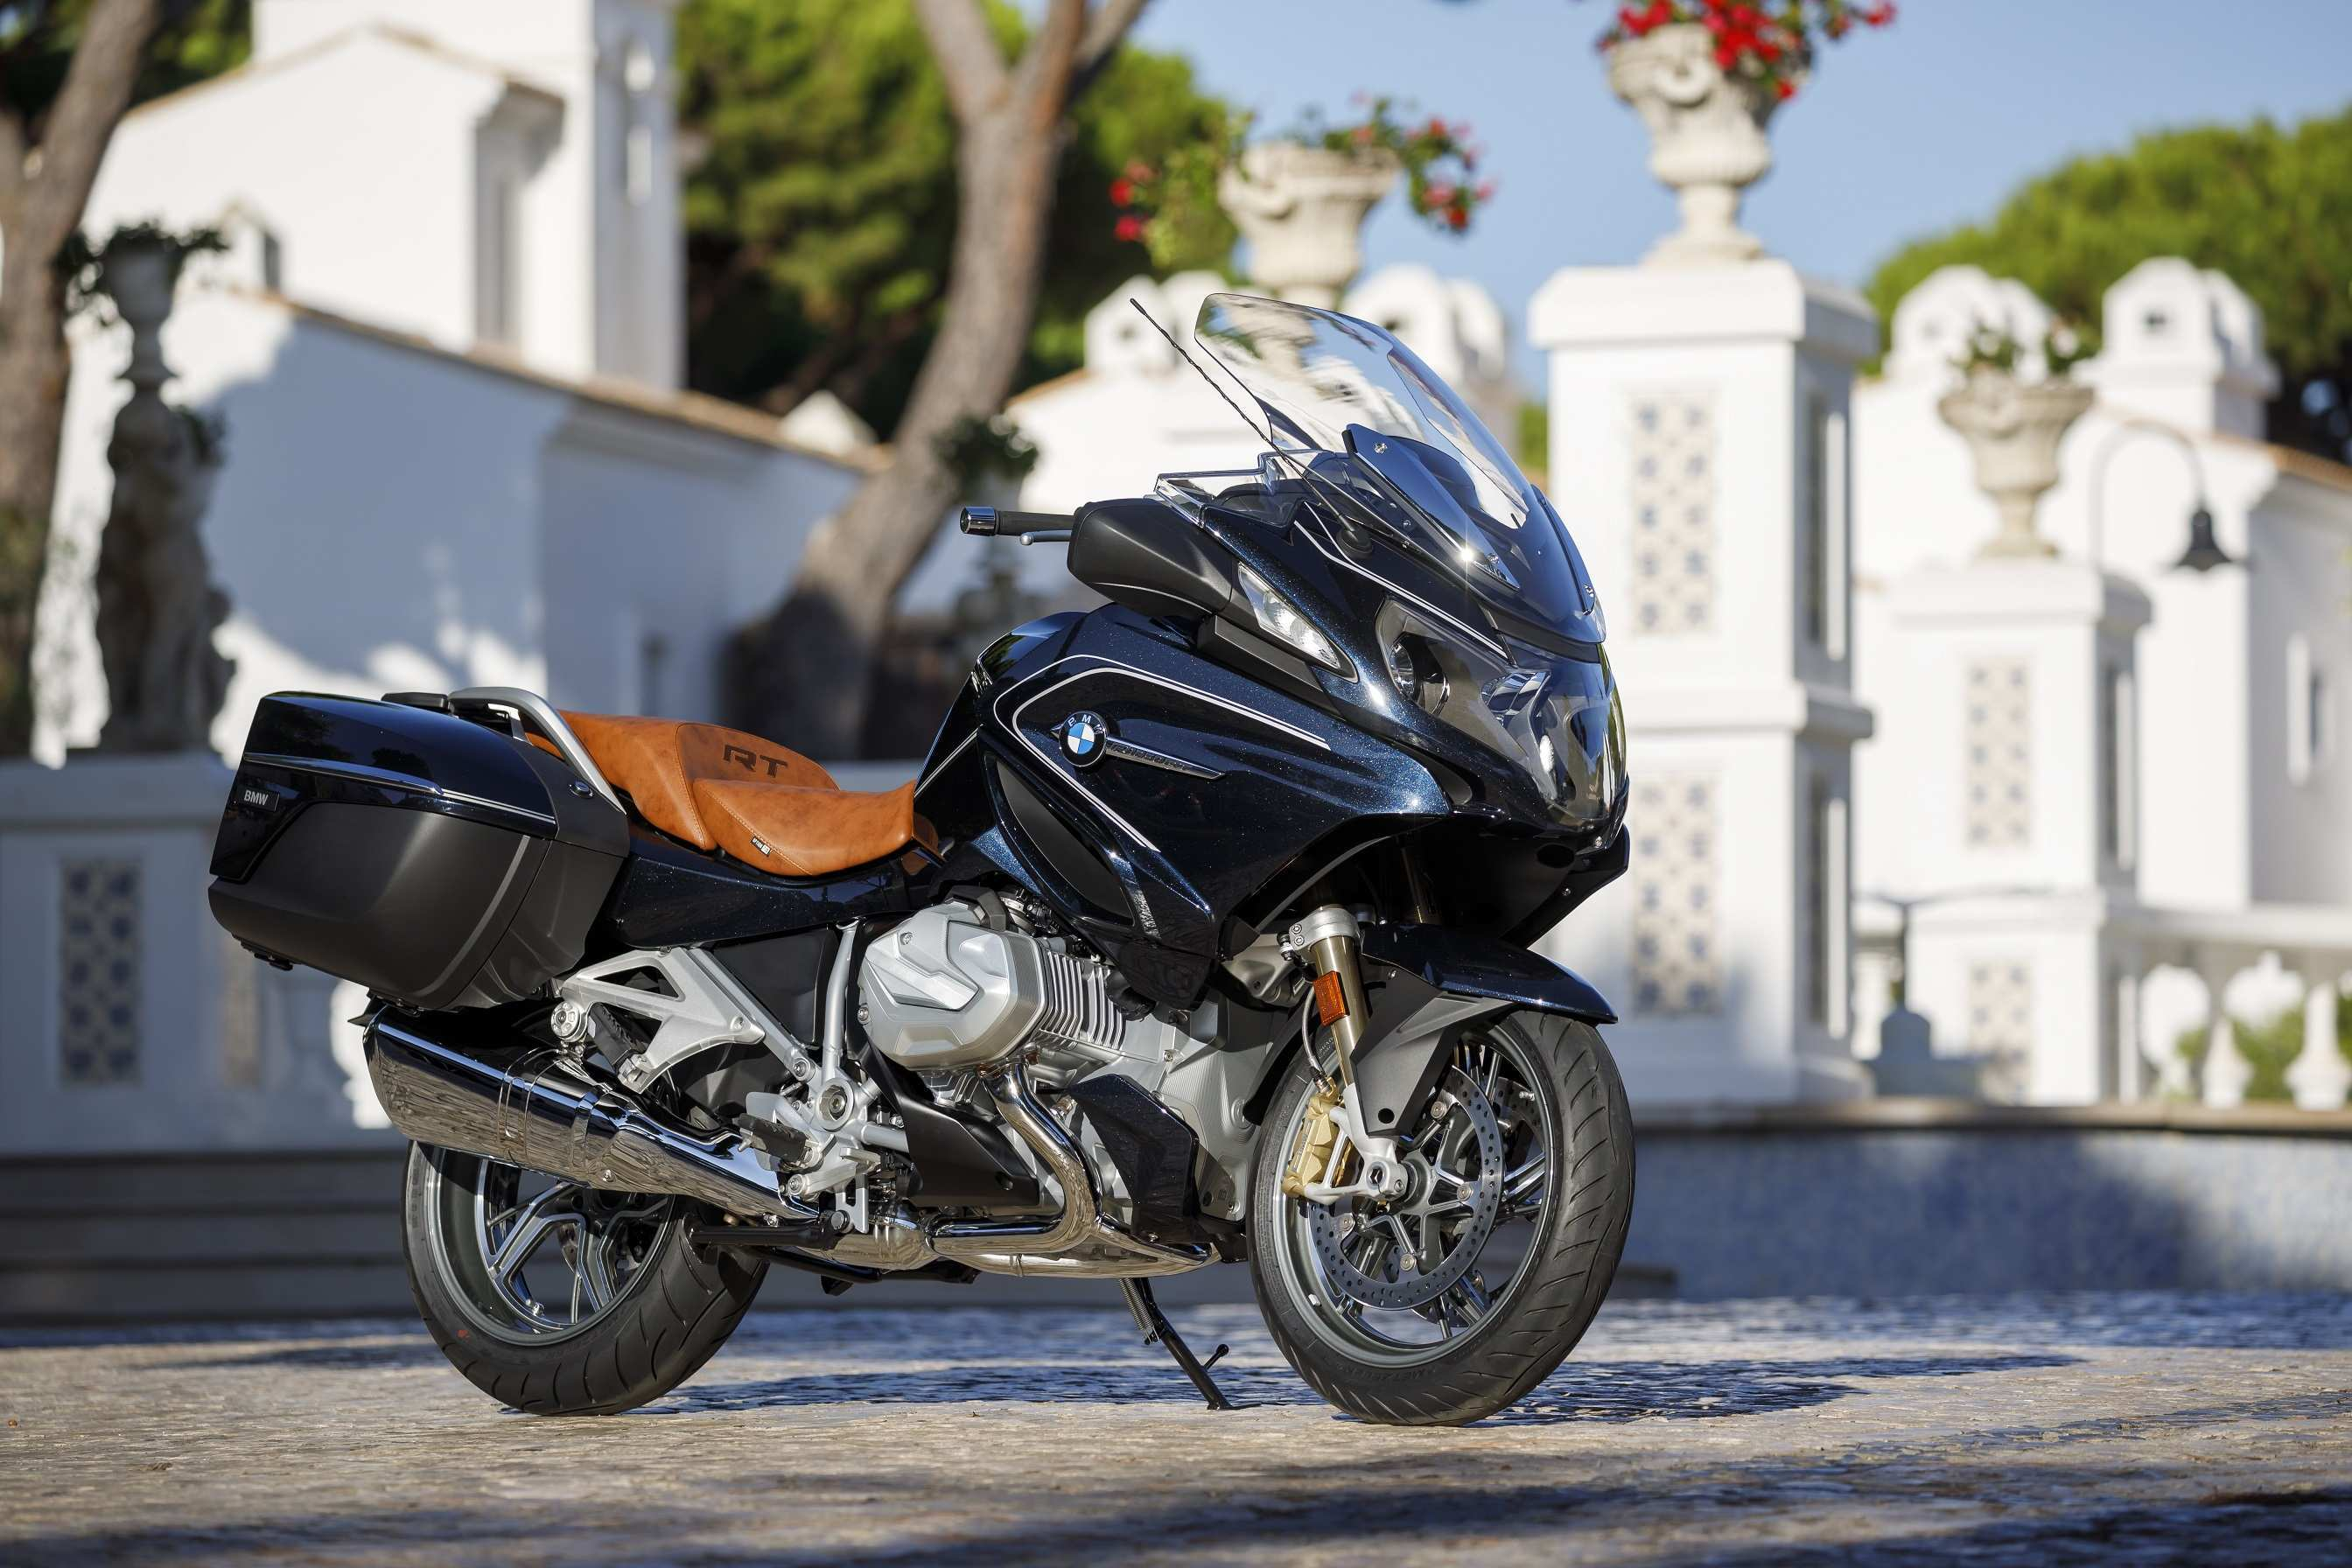 57 All New Best Bmw Boxer 2019 Exterior Model by Best Bmw Boxer 2019 Exterior